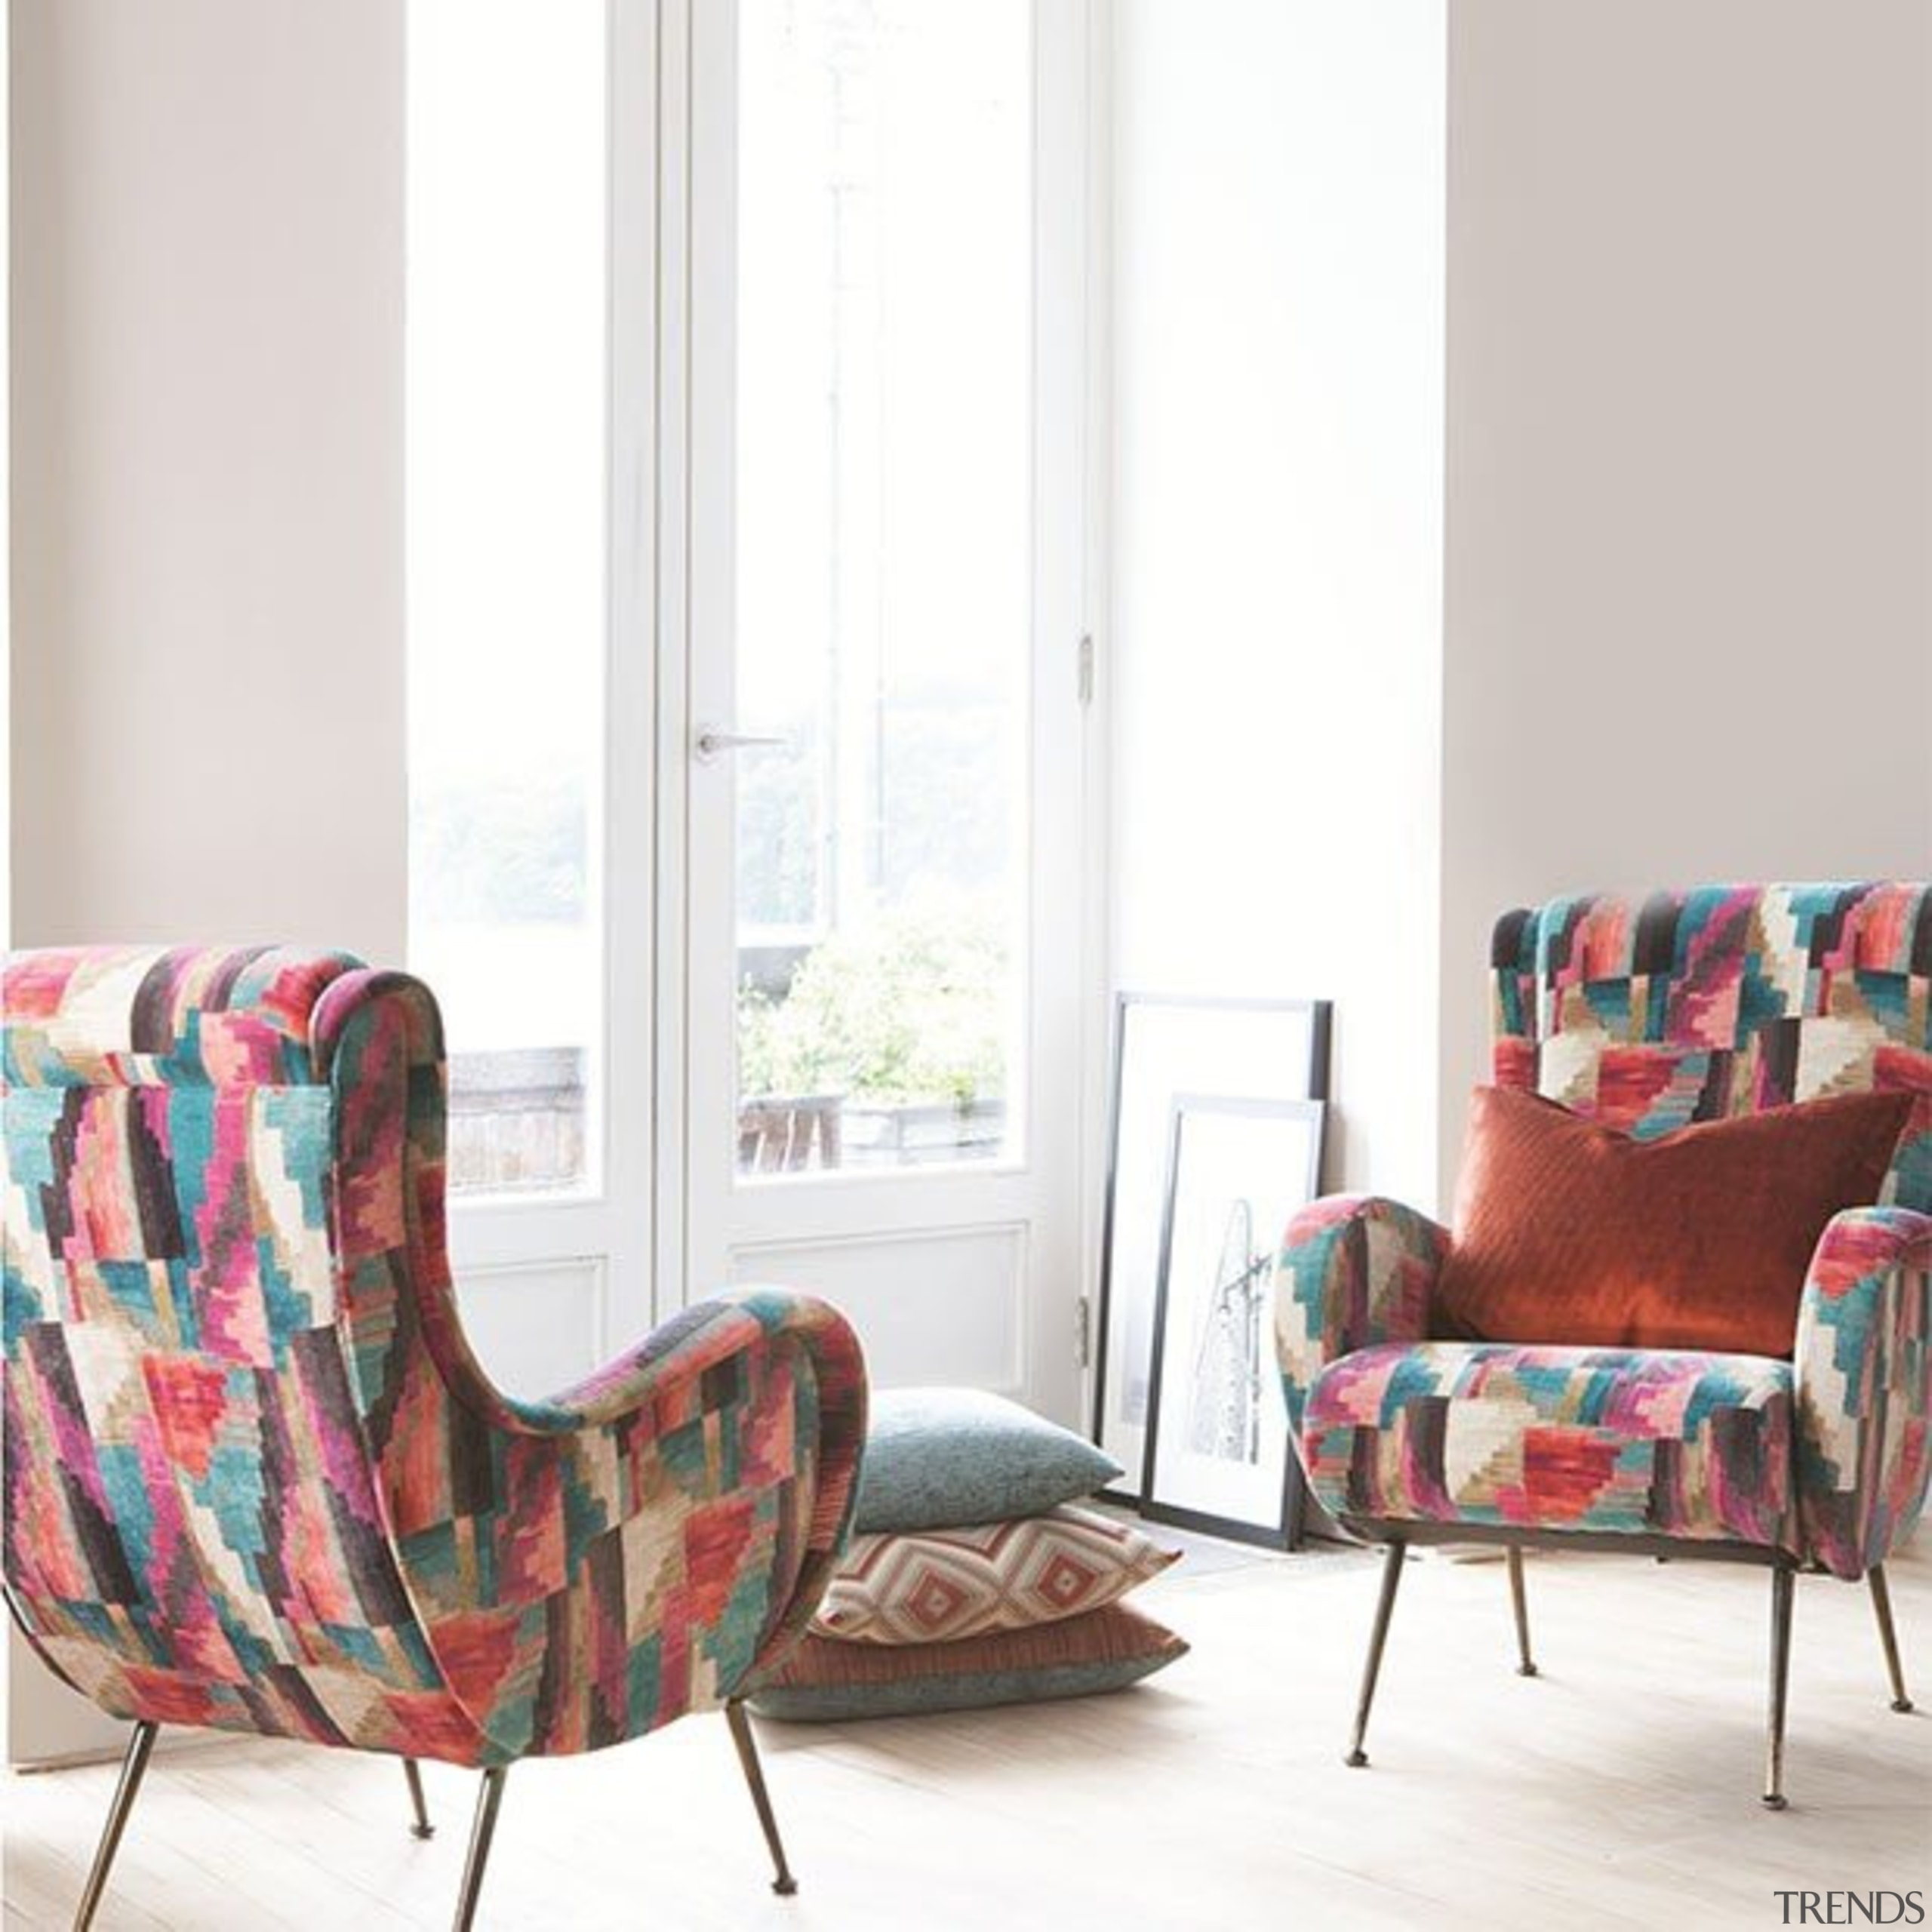 Kaleidoscope 1 - Kaleidoscope 1 - chair | chair, couch, cushion, furniture, home, interior design, living room, room, table, window, white